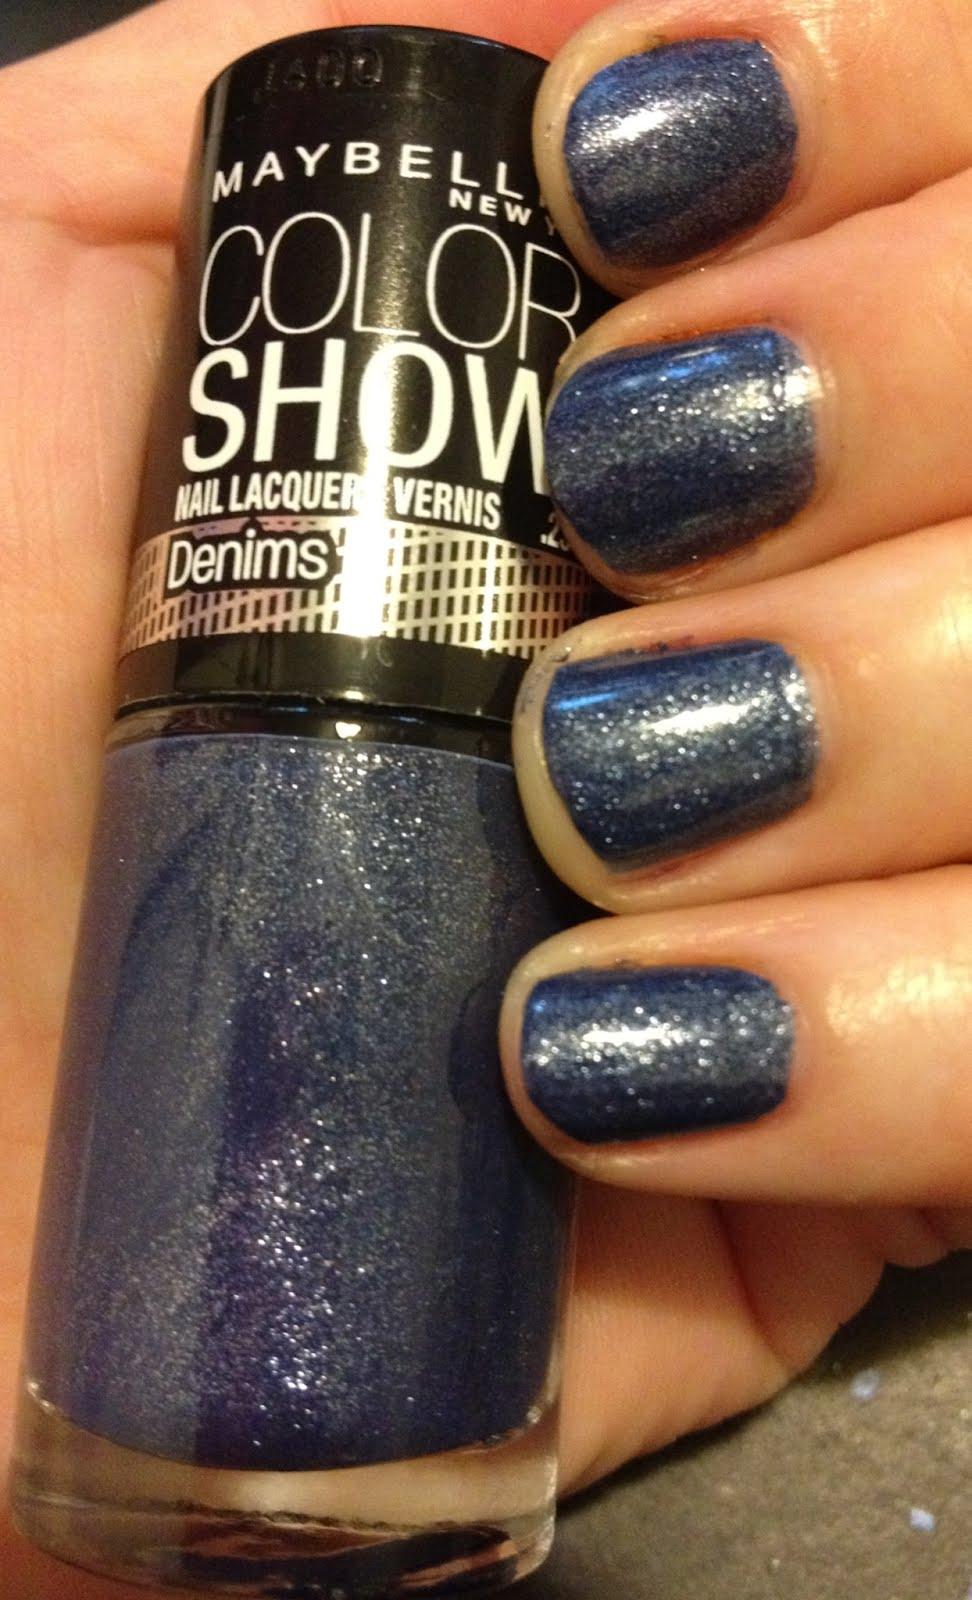 The Beauty Of Life: Maybelline Color Show Nail Lacquer